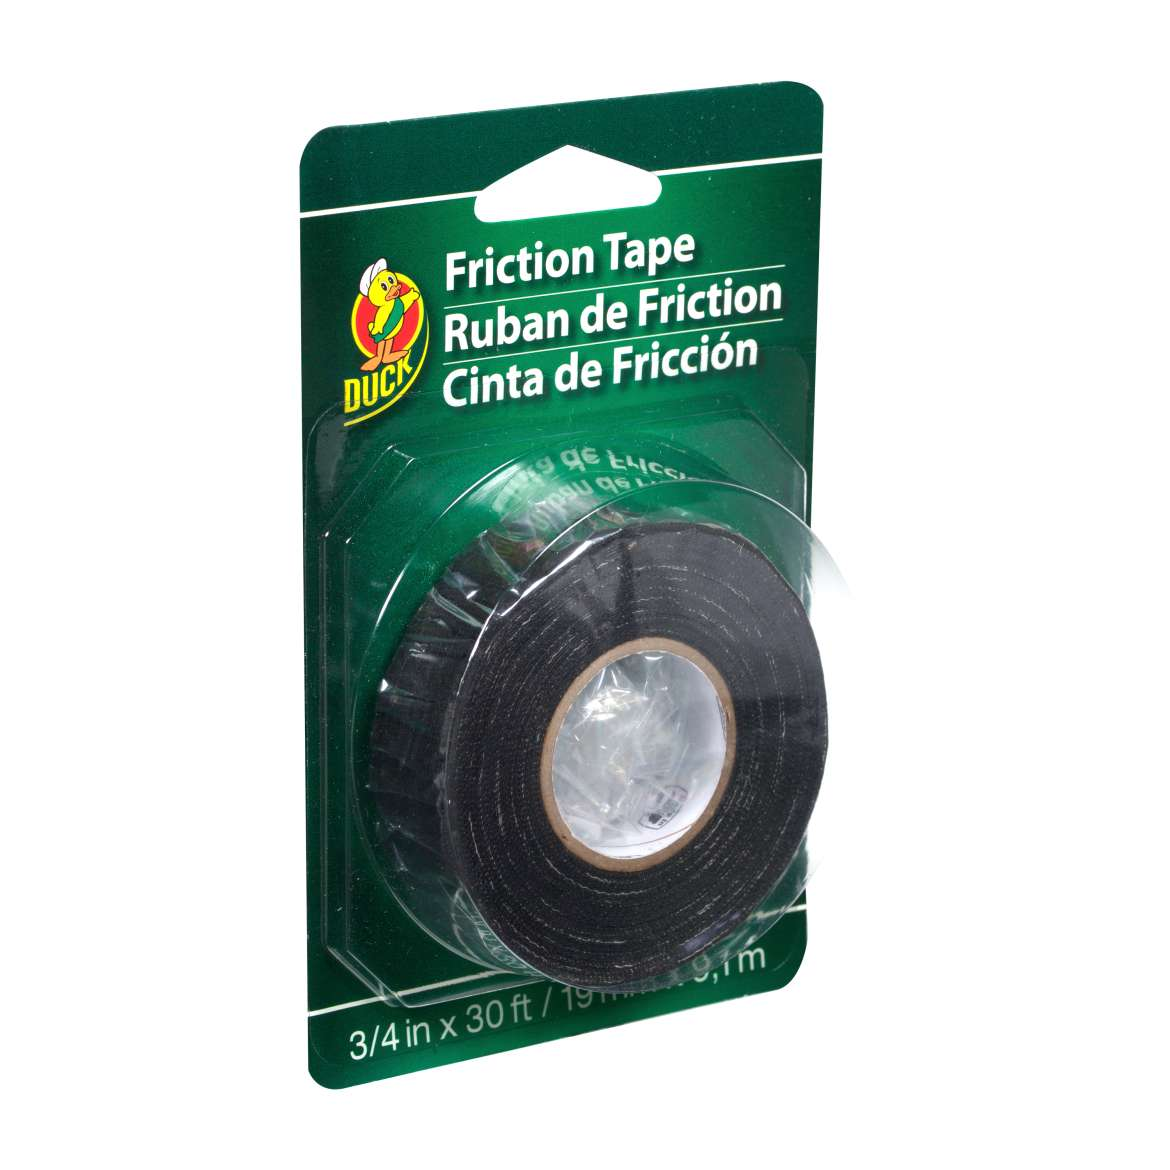 Friction Tape Image